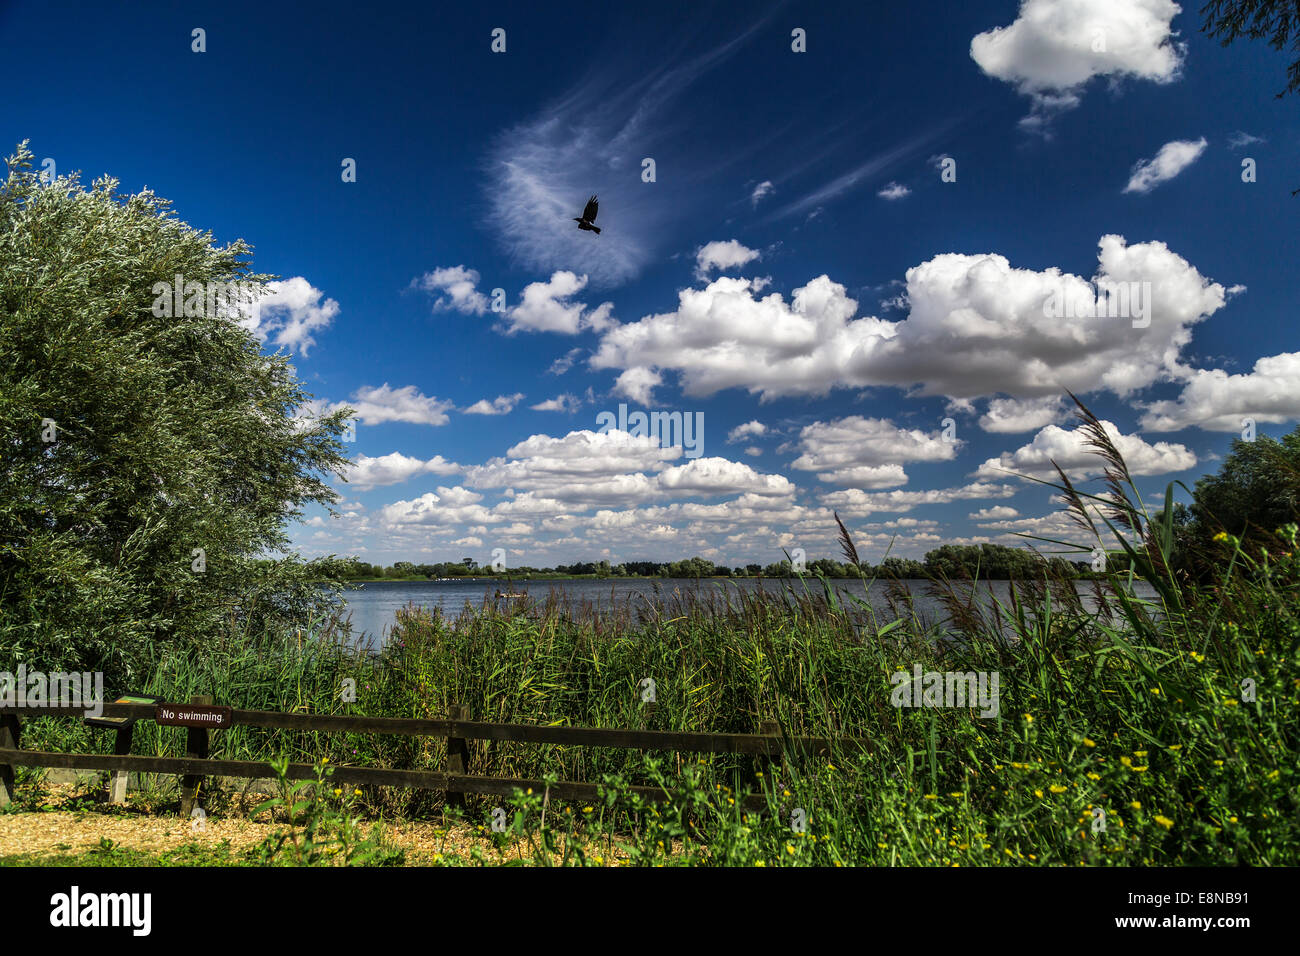 Sunny day, trees surround a lake. Sign says no swimming. Stock Photo